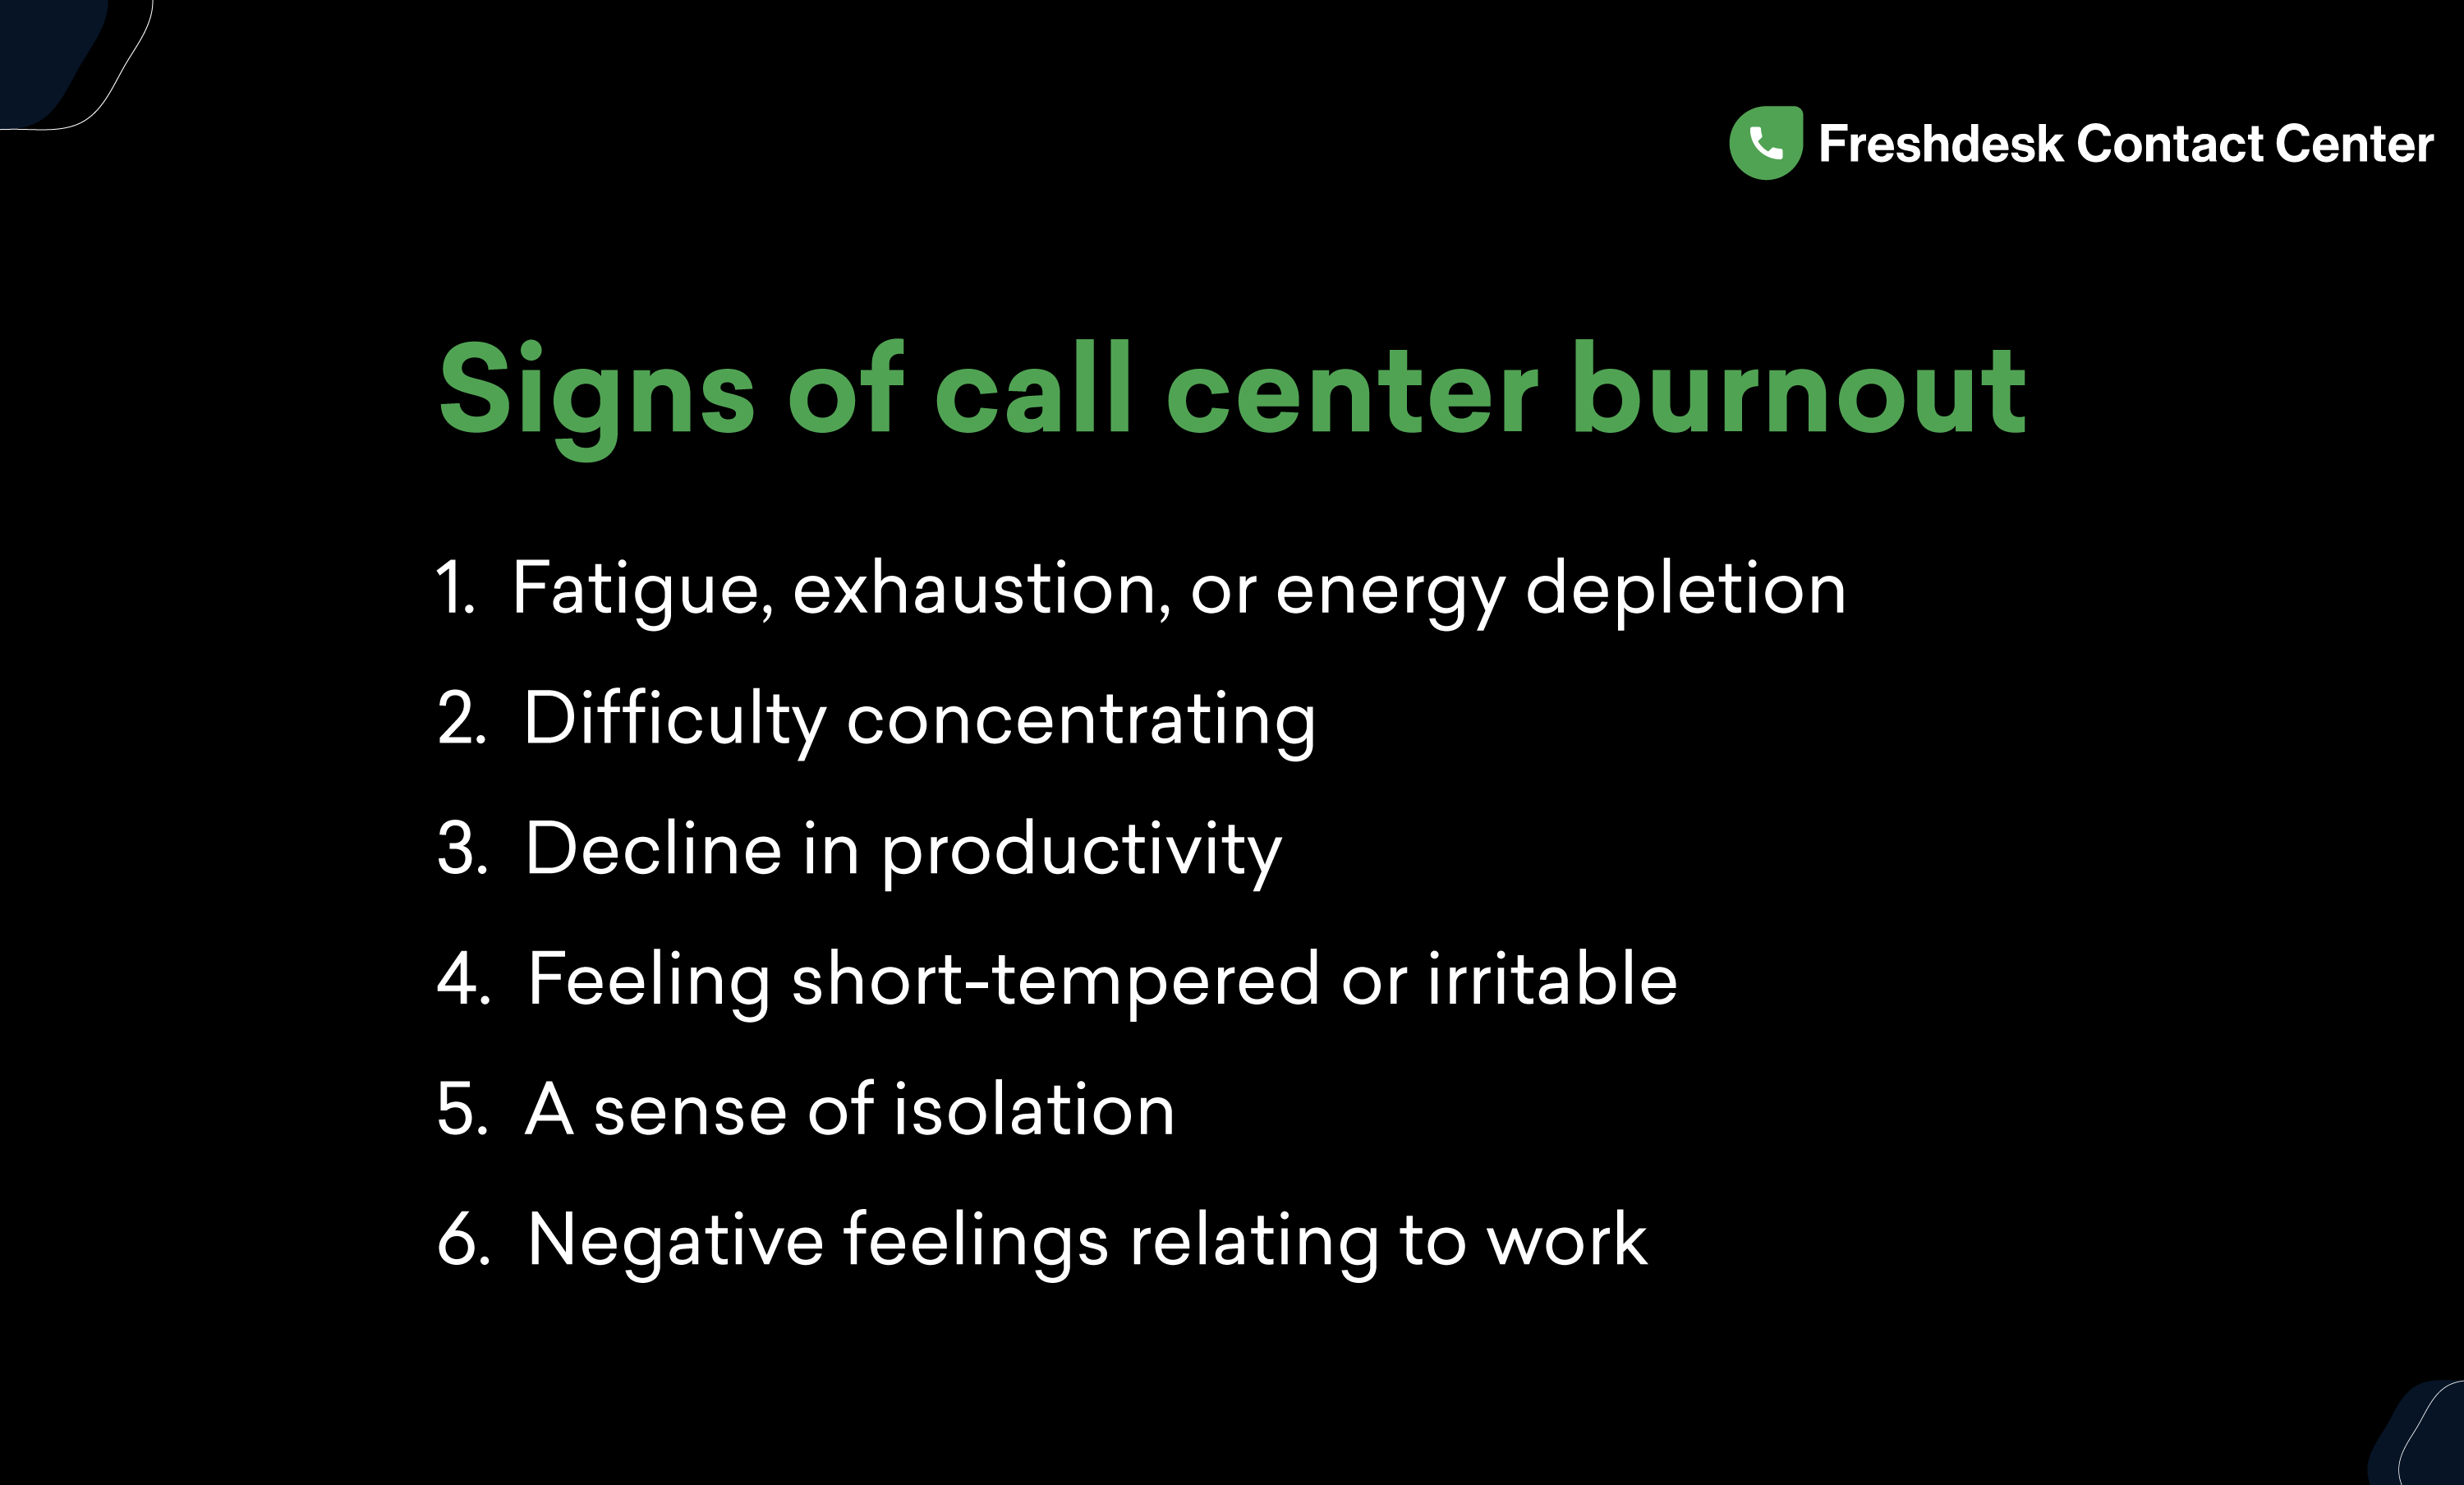 signs of call center burnout (1)